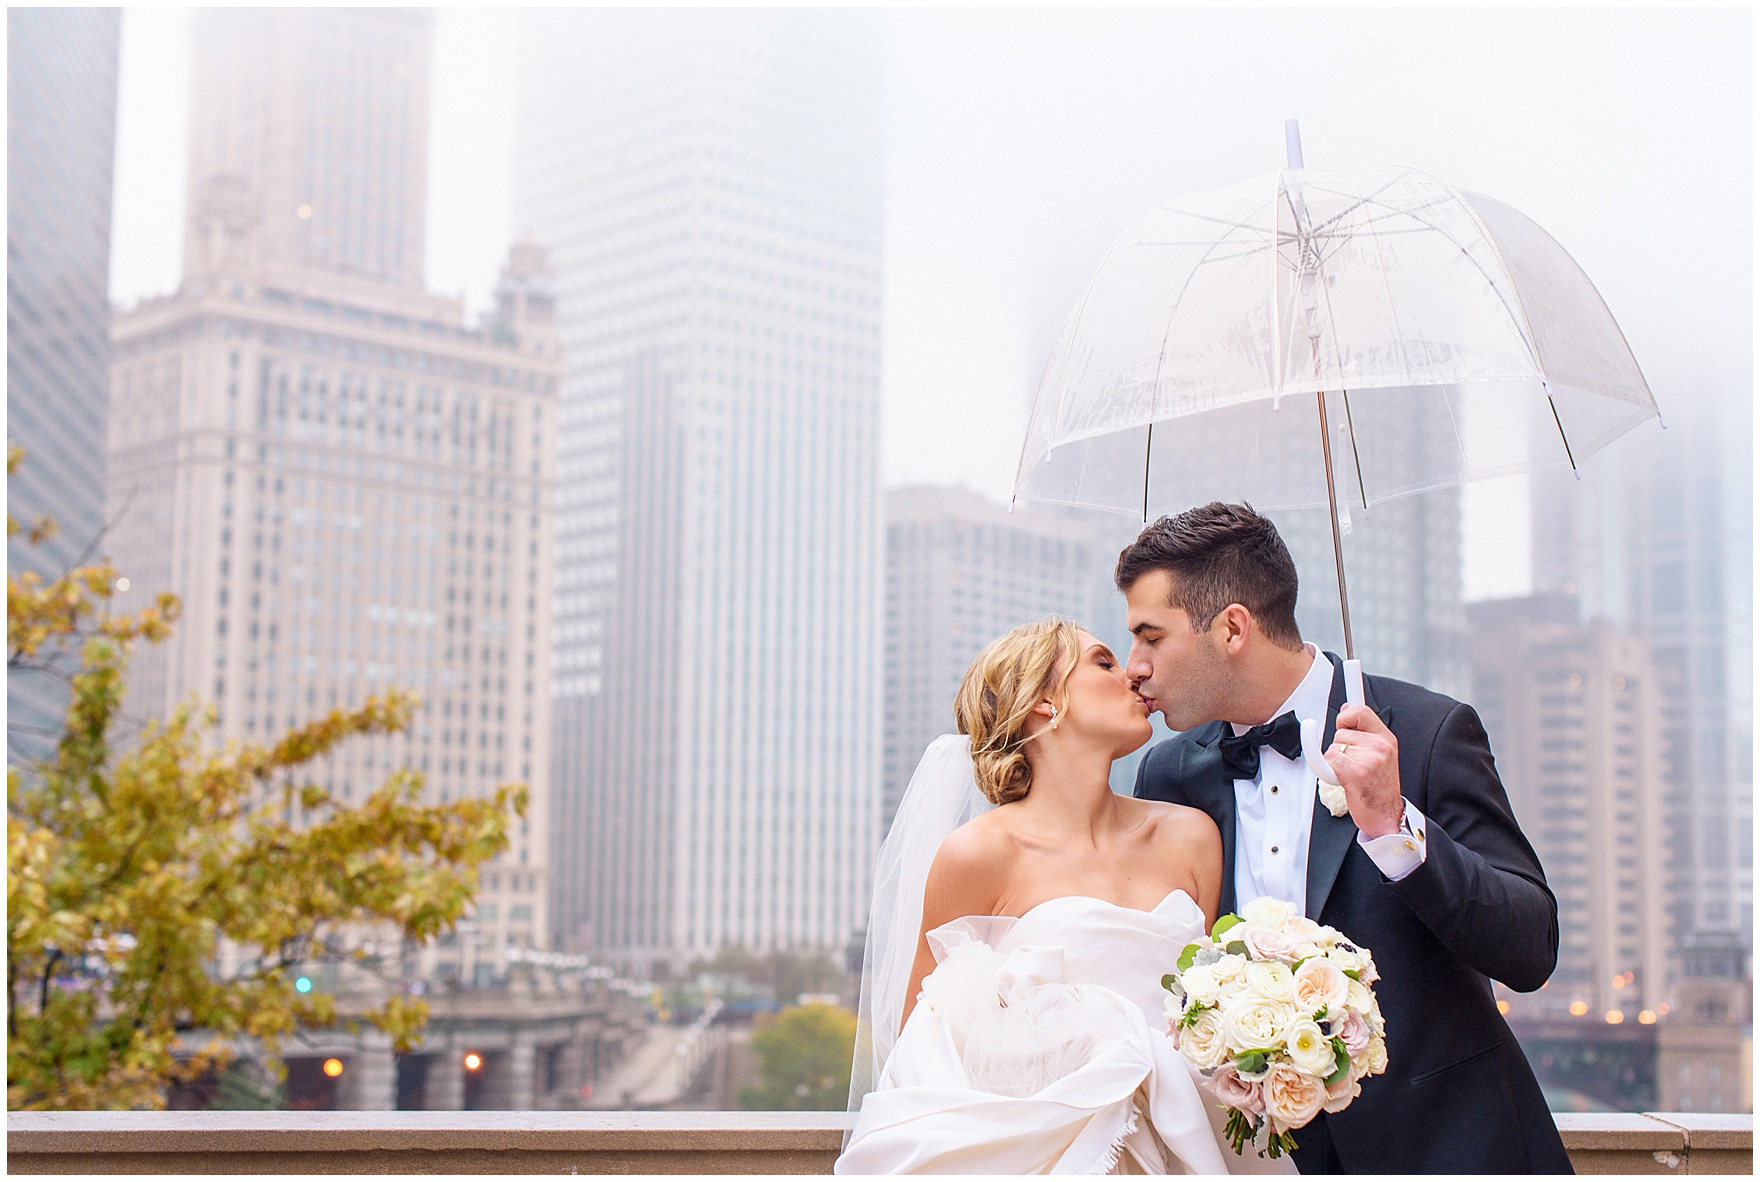 A bride and groom kiss in downtown Chicago on a rainy wedding day during a St. Clement Germania Place Chicago wedding.